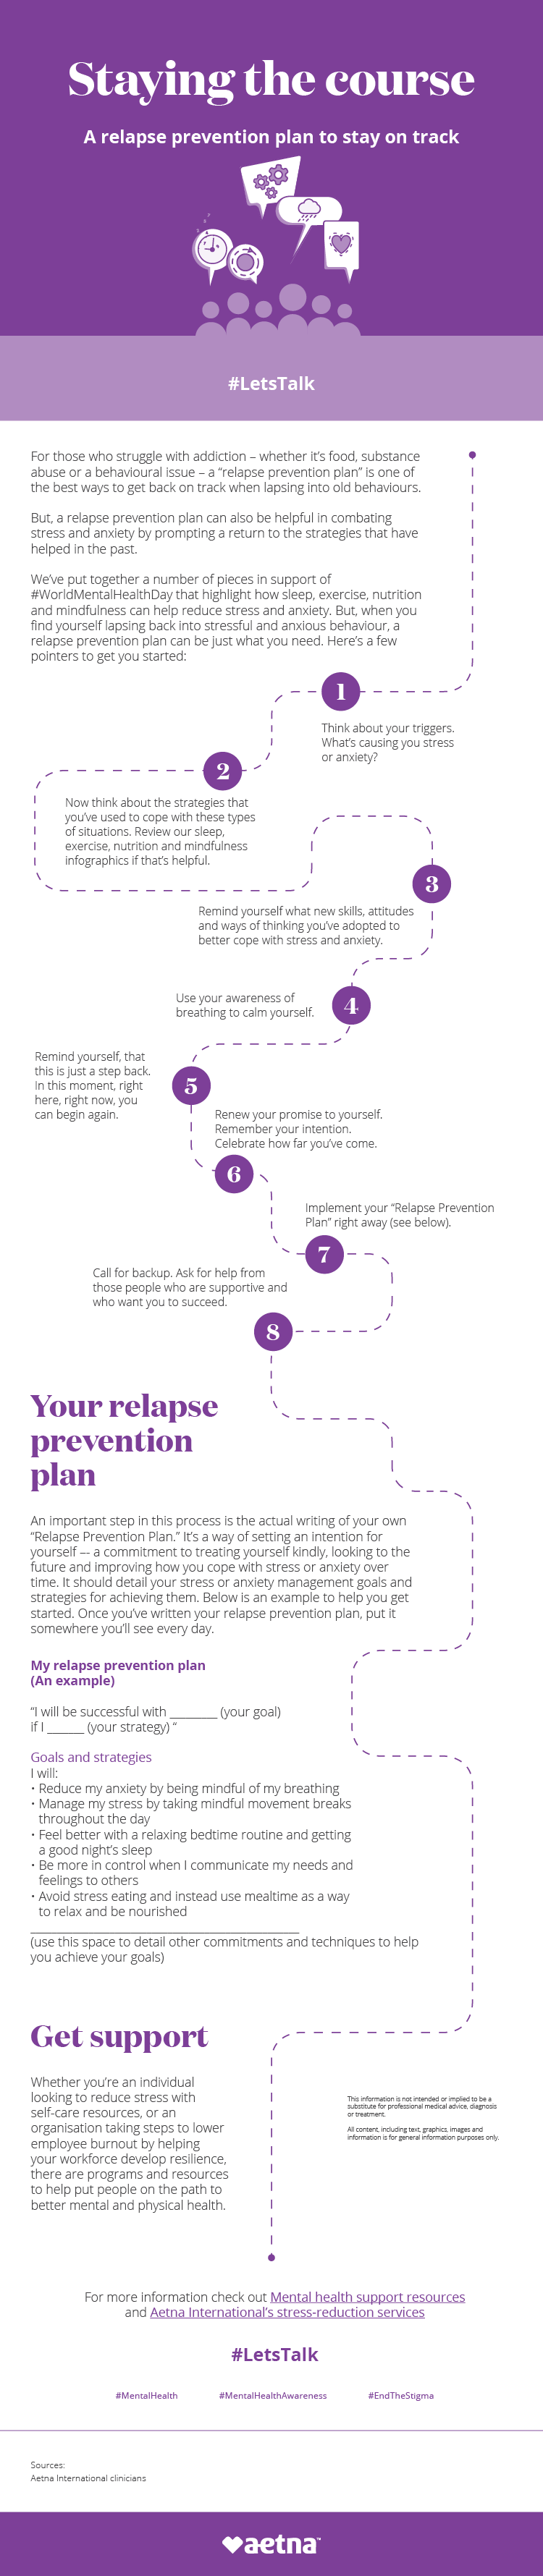 World Mental Health Day Staying the Course: A Relapse Prevention Plan for Staying on Track Infographic